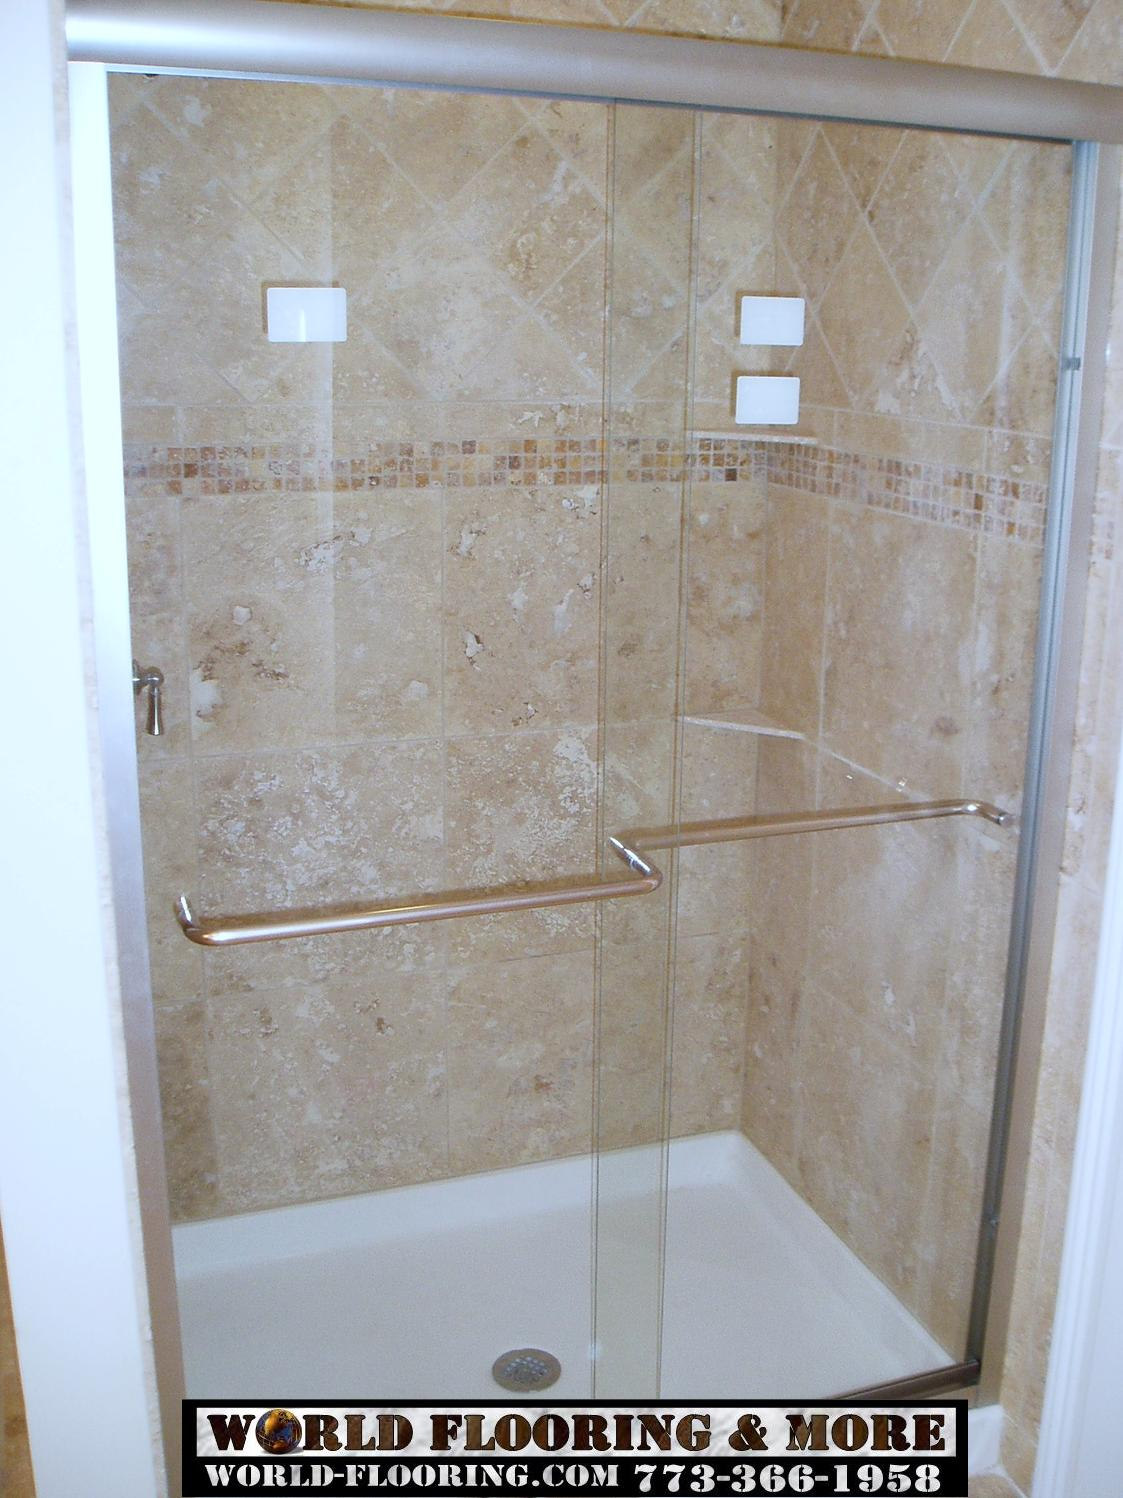 Wonderful Custom Cultured Marble Shower Bathroom Remodeling World Flooring U0026 More  773 366 1958 Chicago